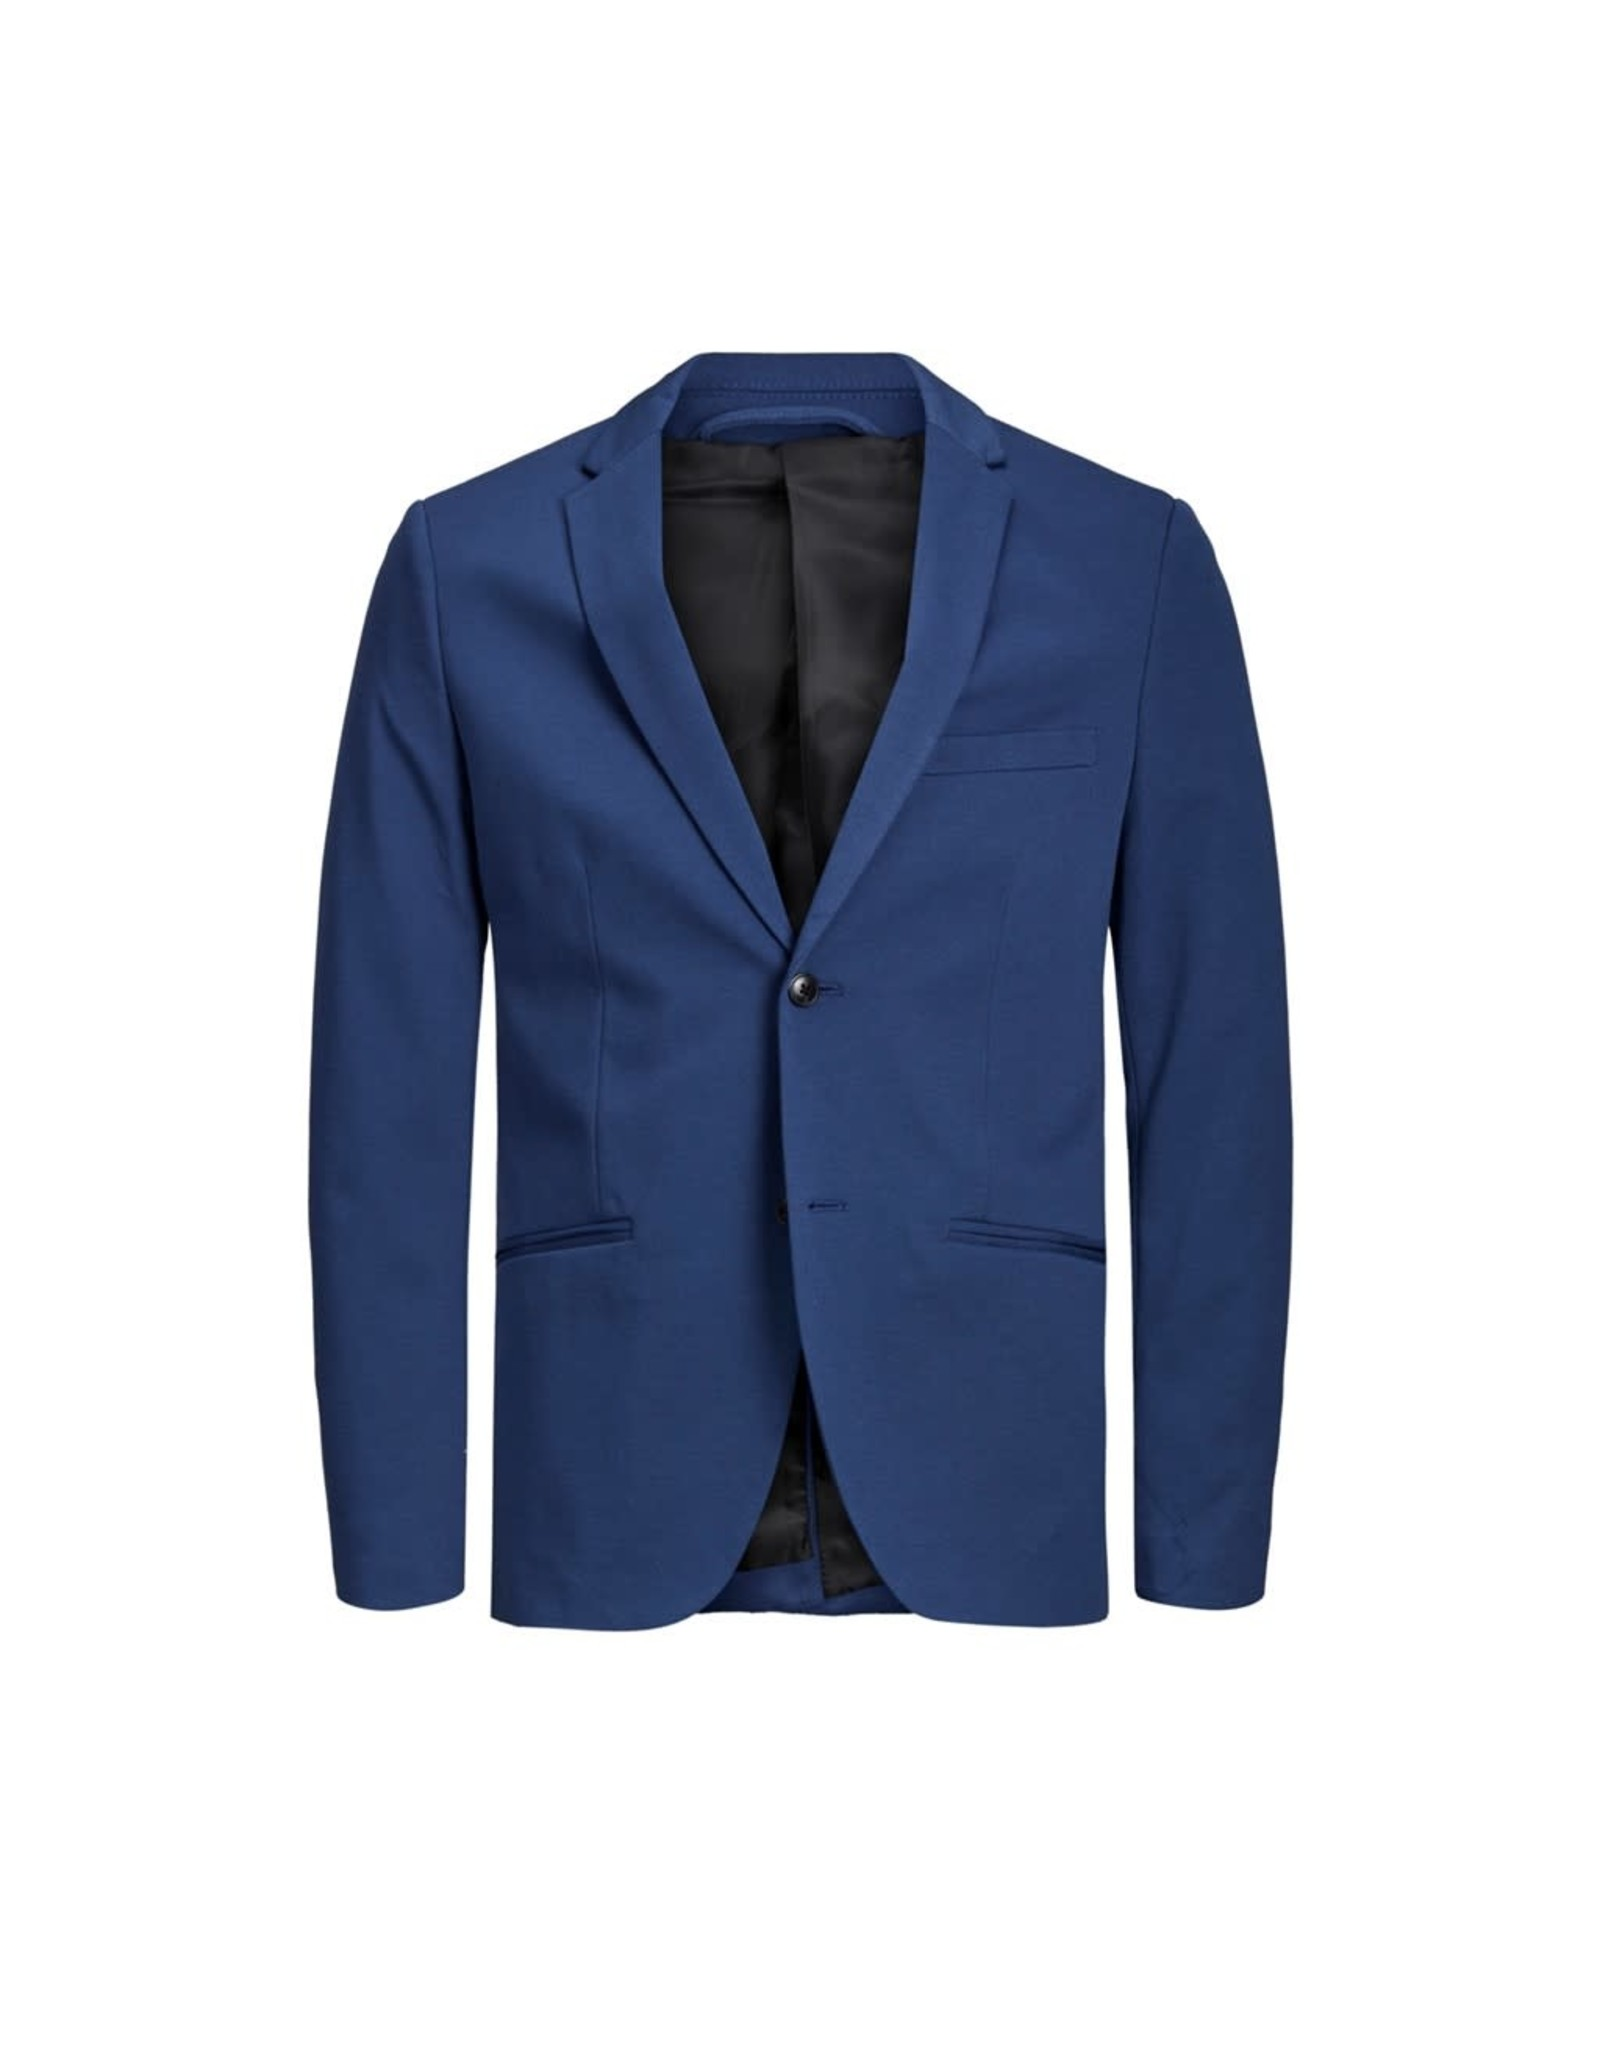 Jack & jones junior Blazer Steven noos blauw